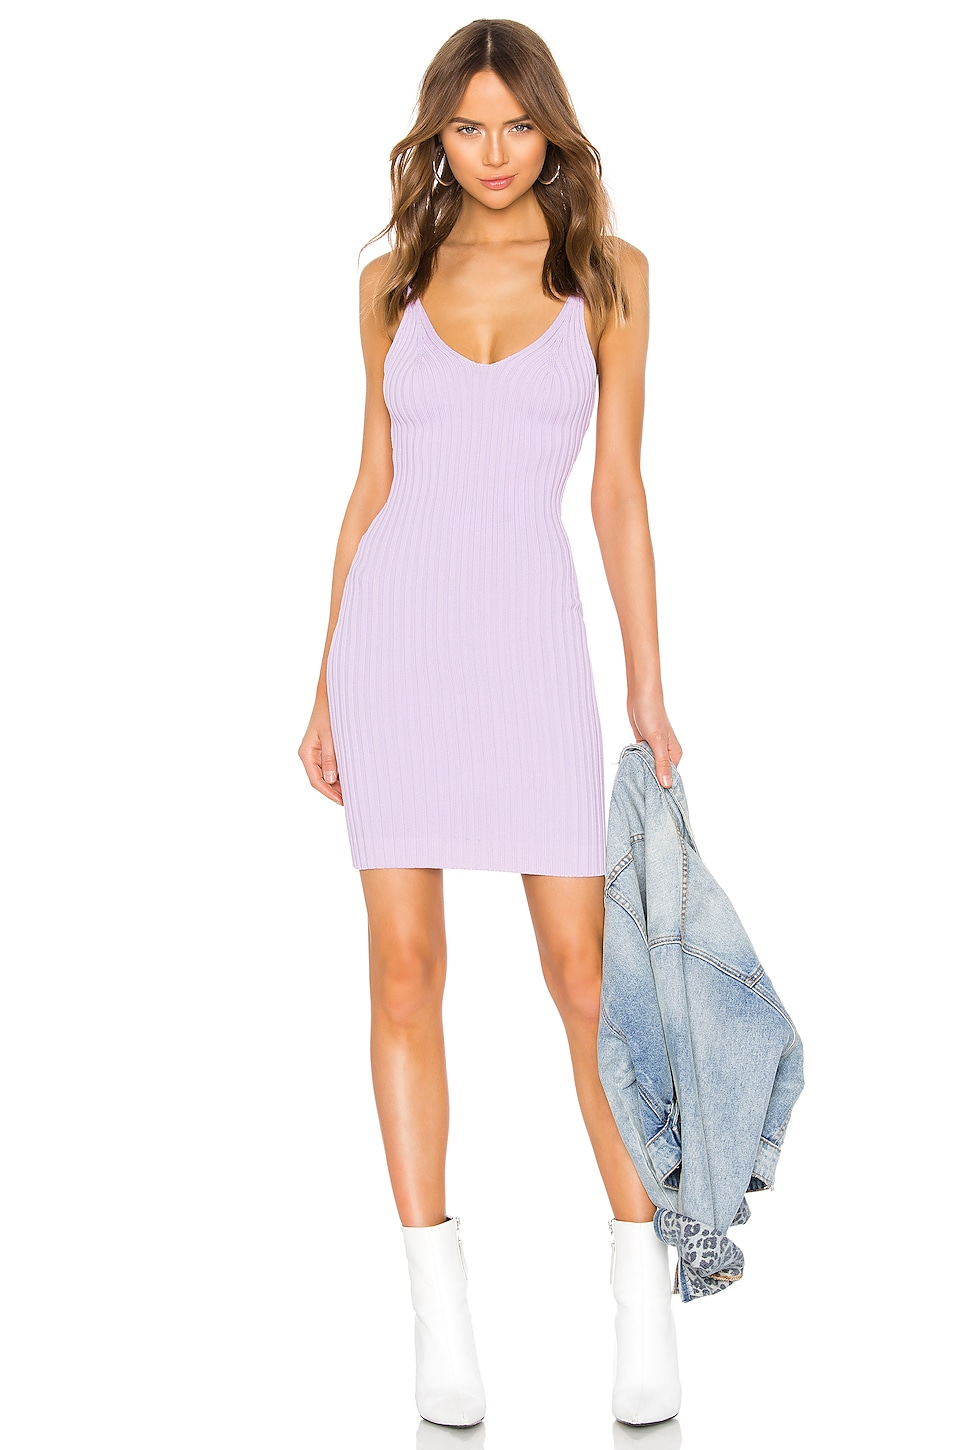 T by Alexander Wang Shrunken Rib Fitted Tank Dress in Lavender